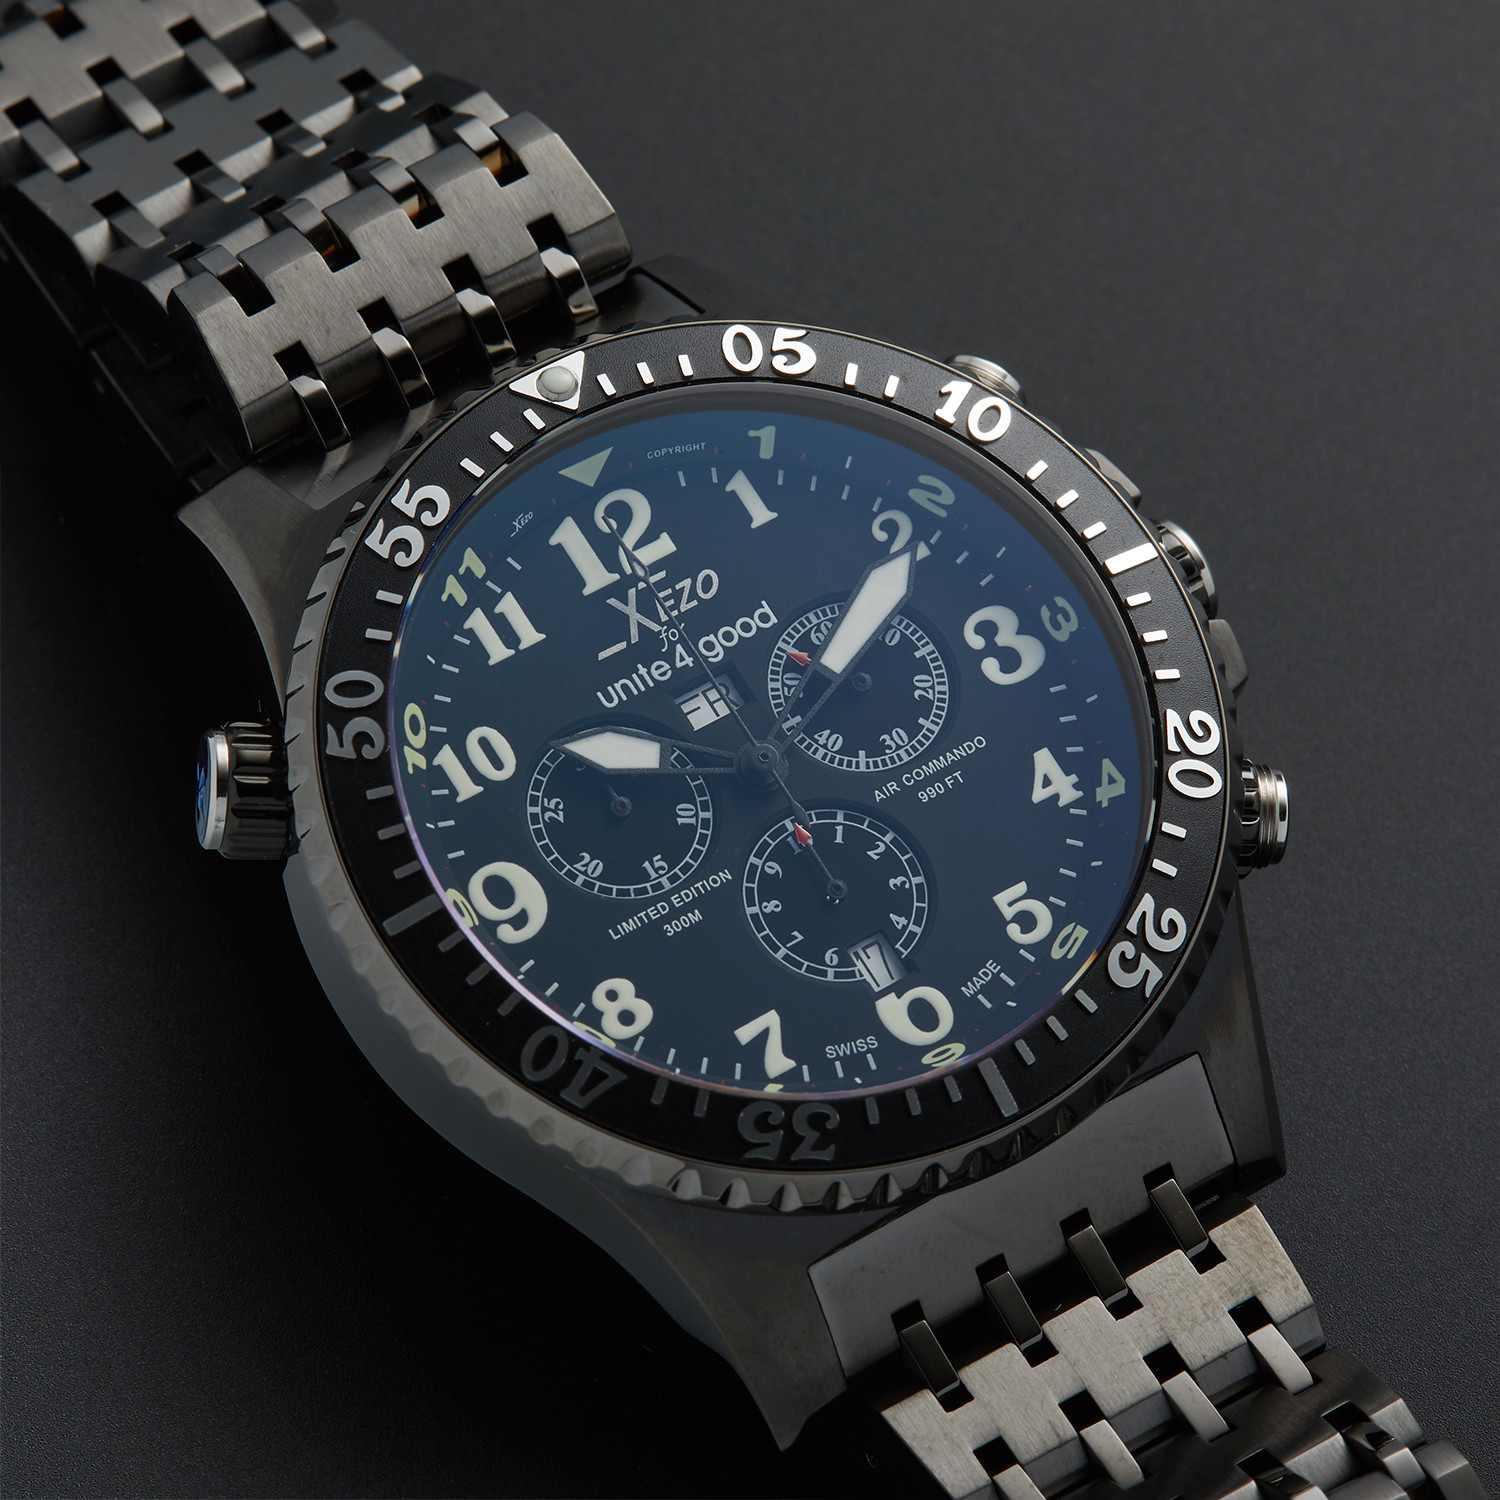 Xezo air commando chronograph quartz d45 b xezo touch of modern for Xezo watches